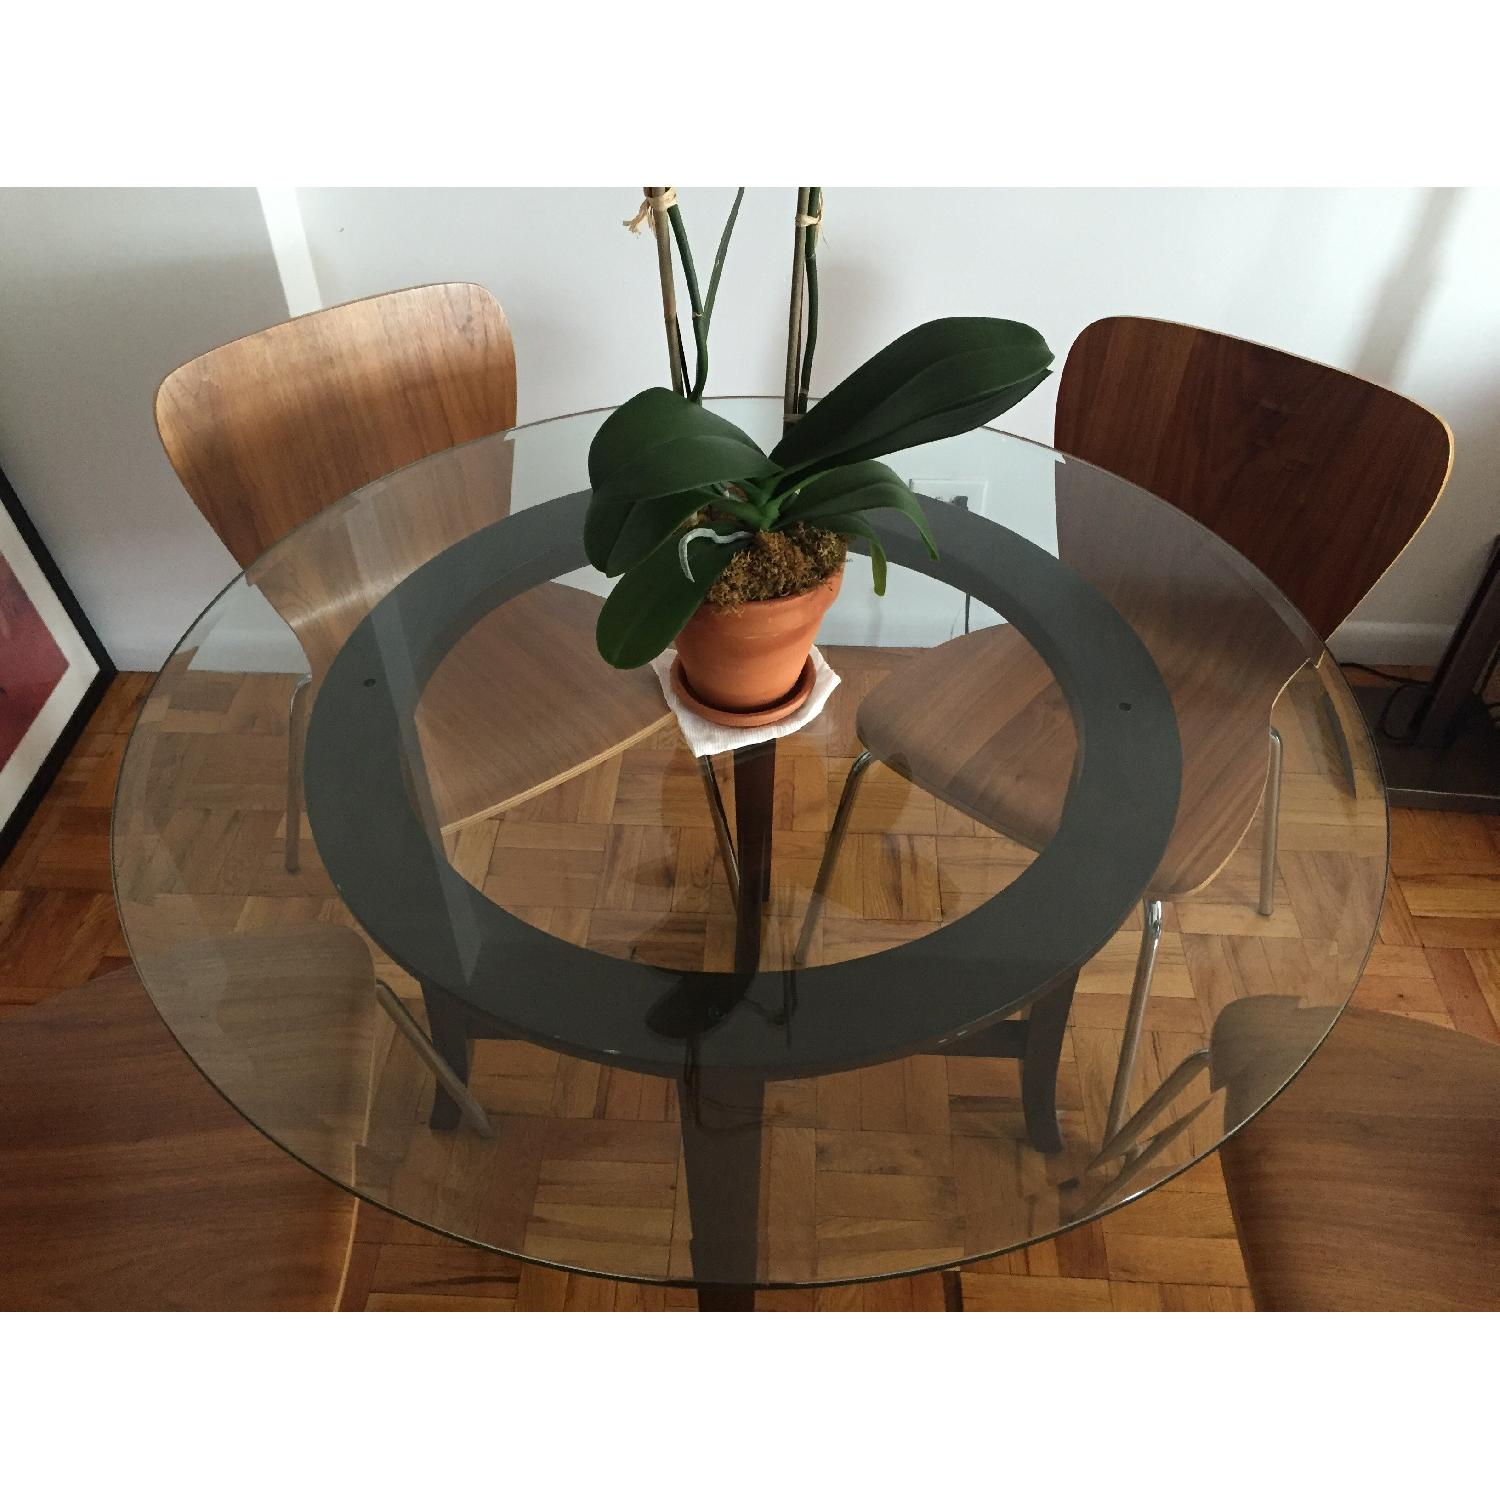 Crate & Barrel Halo Ebony Round Dining Table w/ Glass Top - image-3